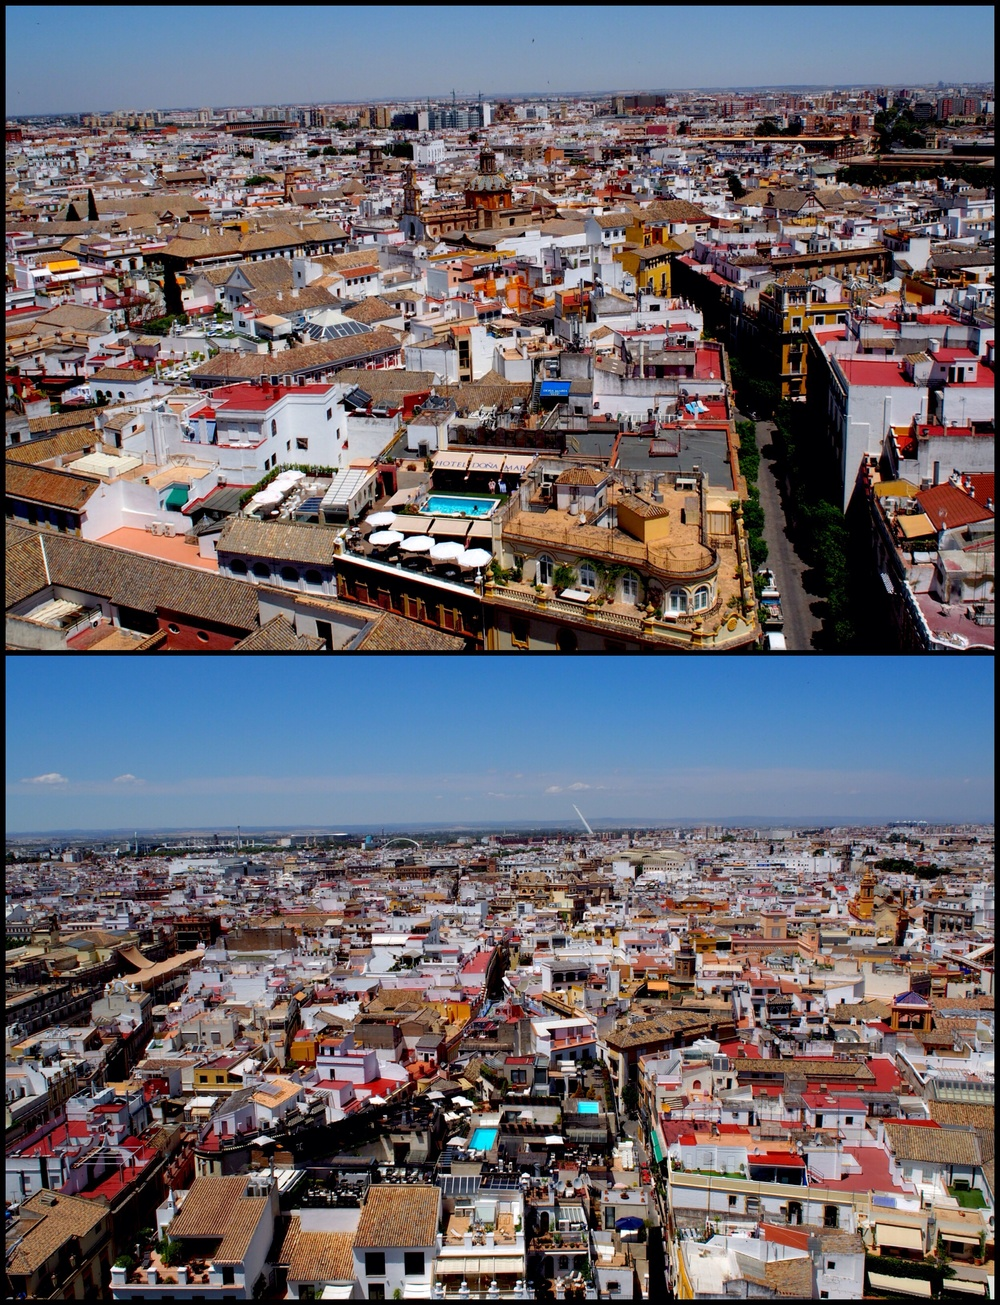 Some of the 360 degree views over Seville. Magical.